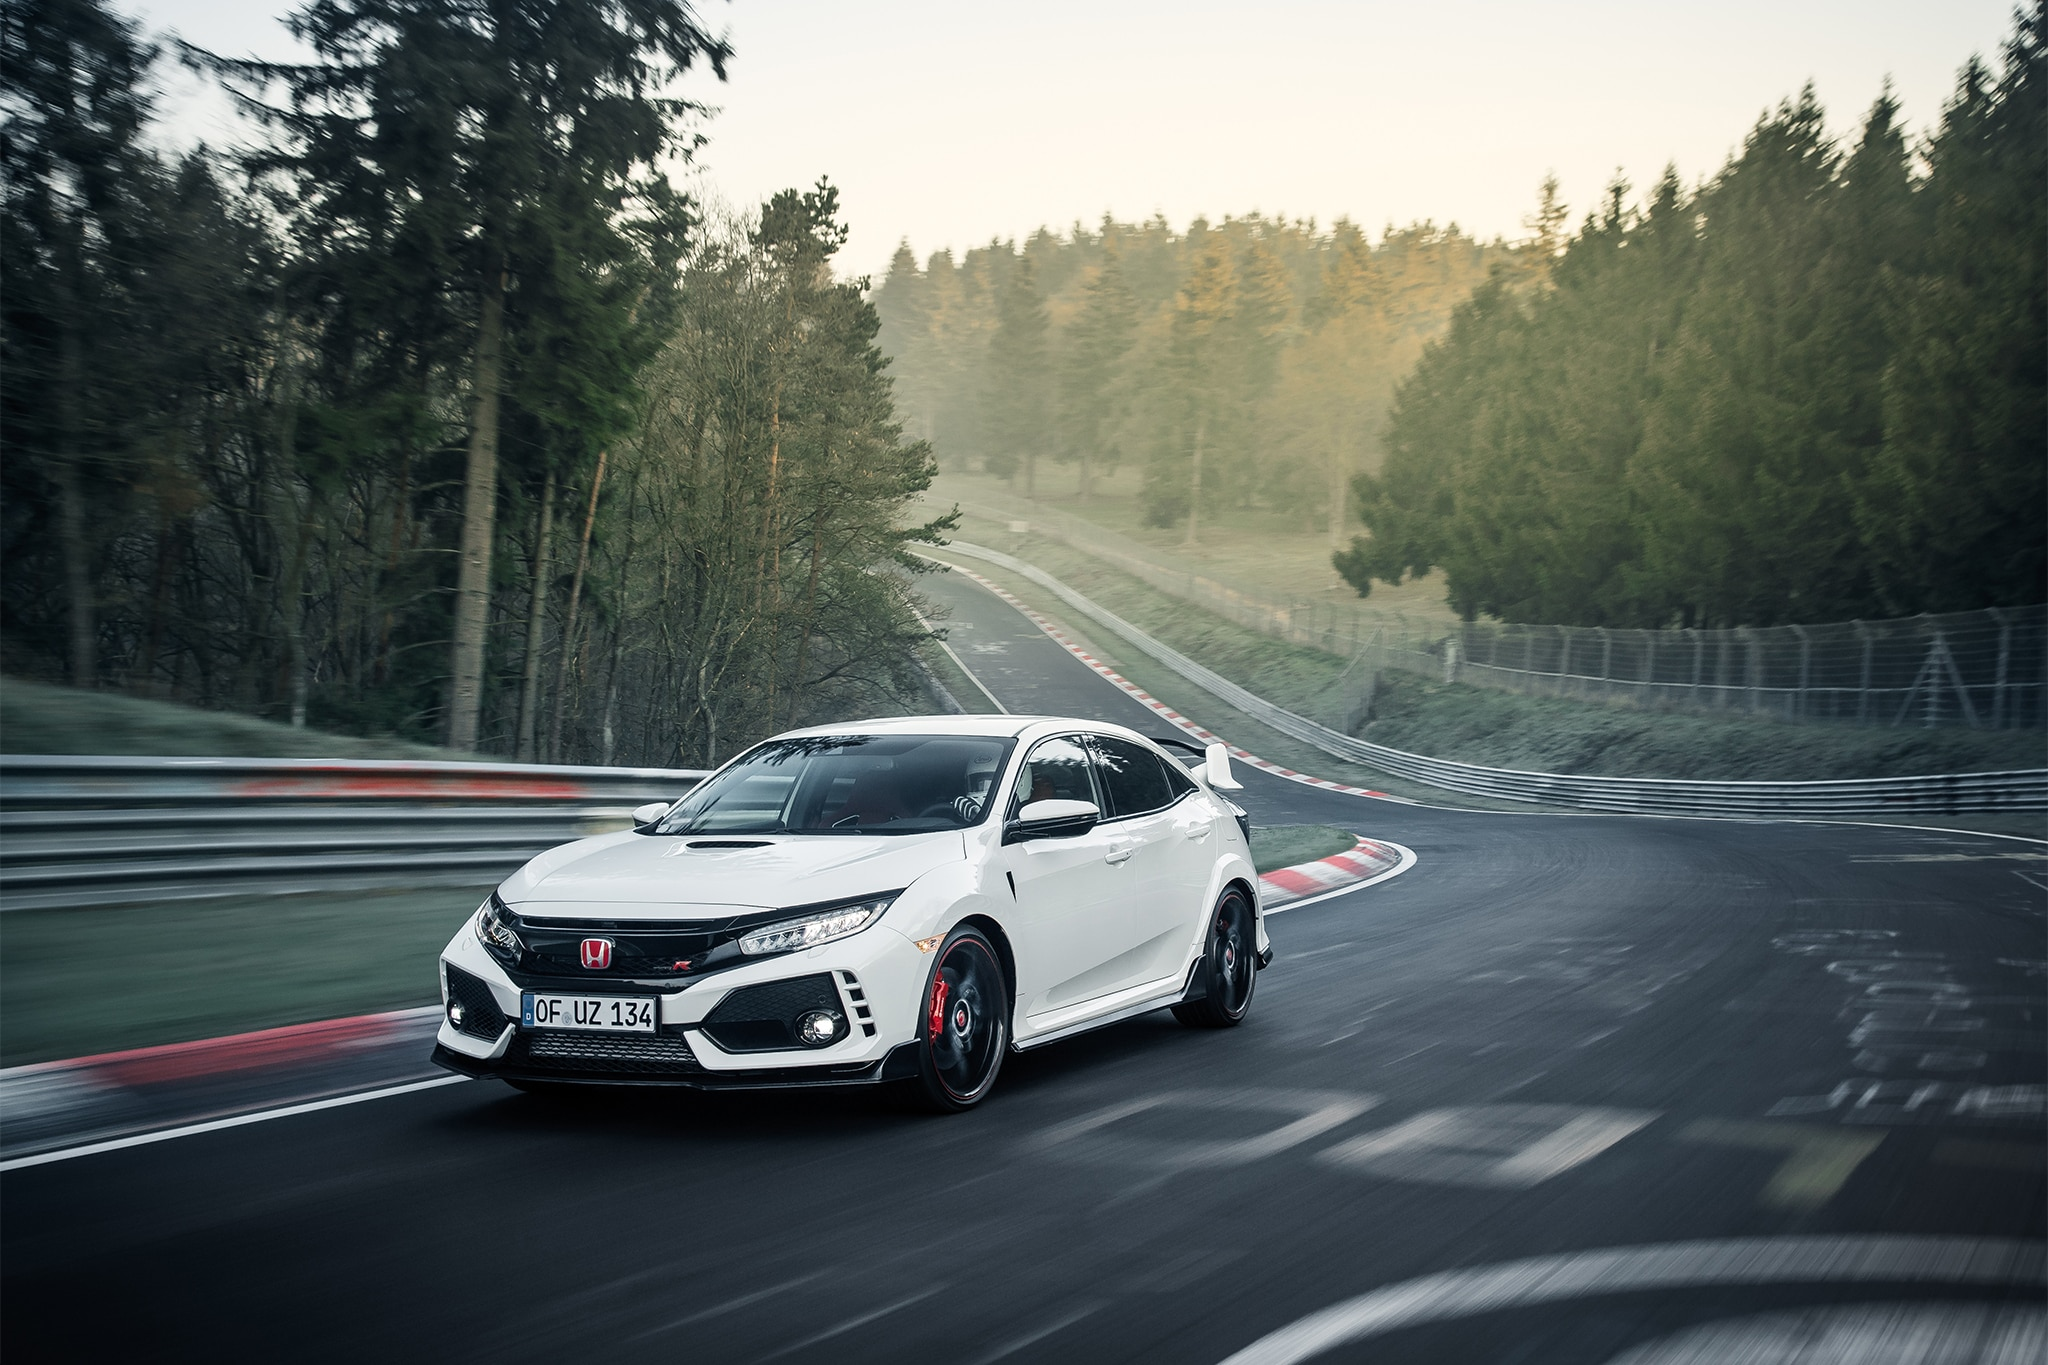 2017 Honda Civic Type R Front Three Quarter In Motion 02